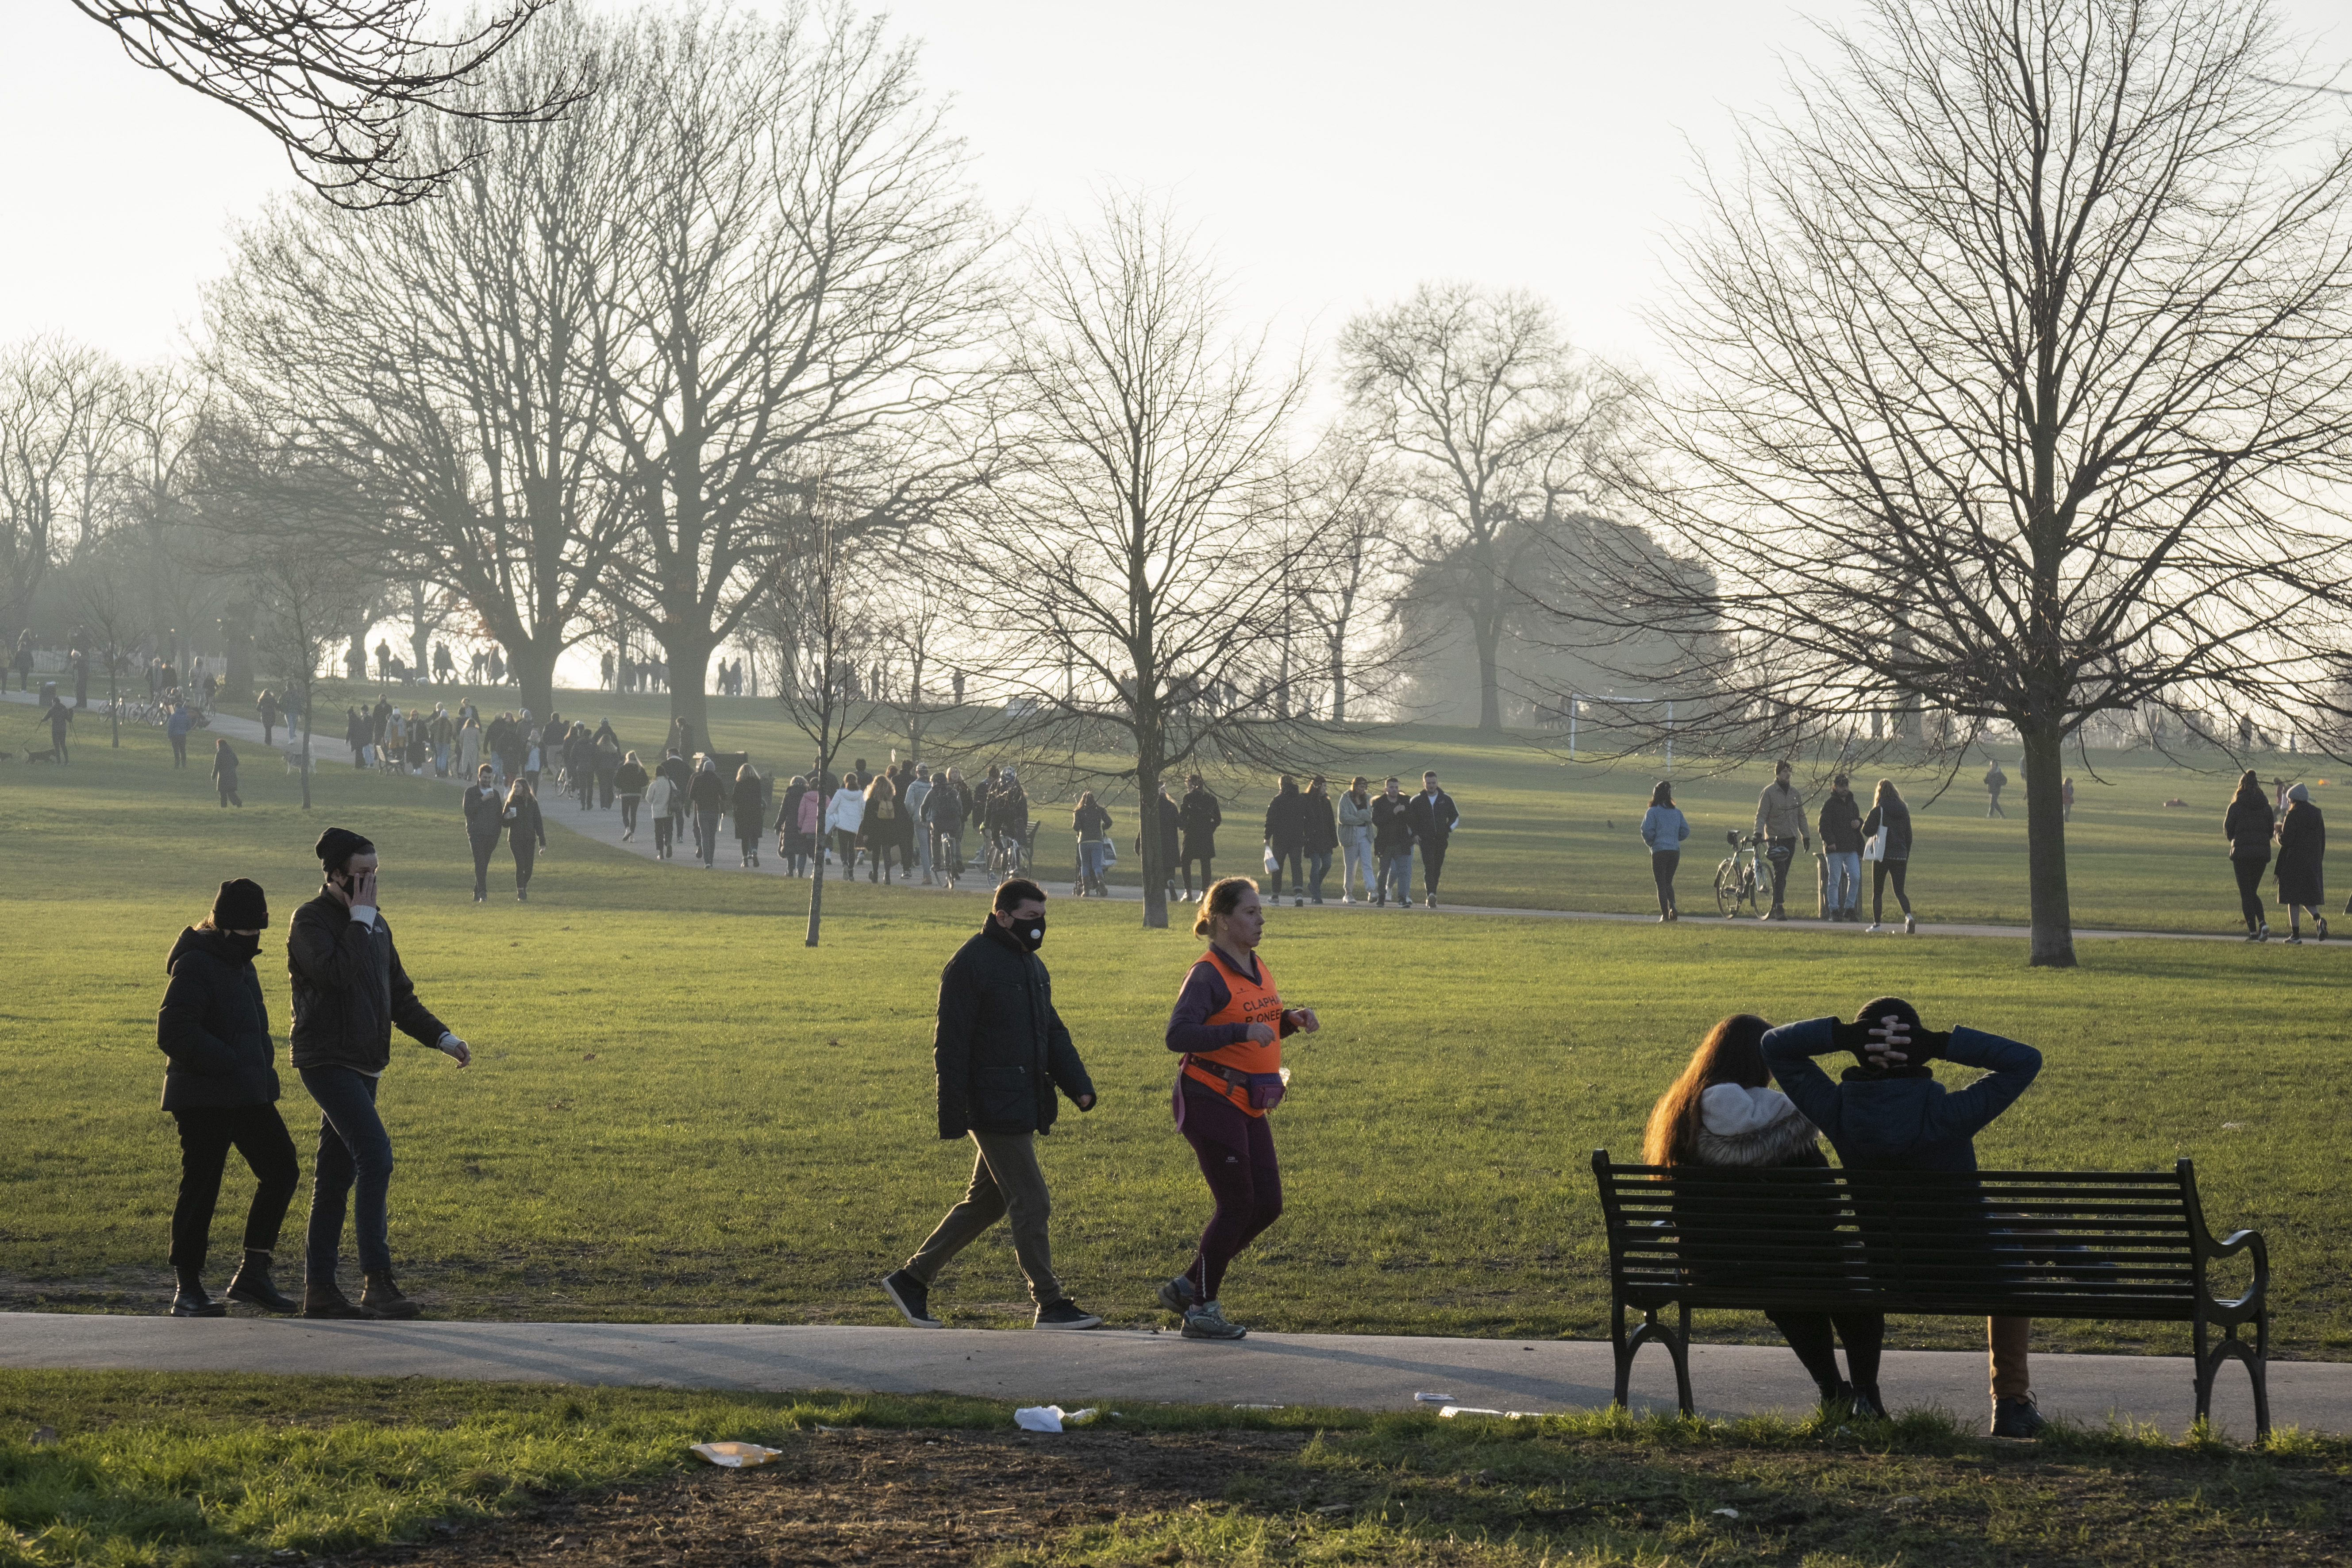 A day after London Mayor Sadiq Khan announced the spread of Covid is said to be out of control, South Londoners take their exercise in a cold Brockwell Park in Lambeth and during the third pandemic lockdown, on 9th January 2021, in London, England. The Coronavirus infection rate in London has exceeded 1,000 per 100,000 people, based on the latest figures from Public Health England although the Office for National Statistics recently estimated as many as one in 30 Londoners has coronavirus. (Photo by Richard Baker / In Pictures via Getty Images)